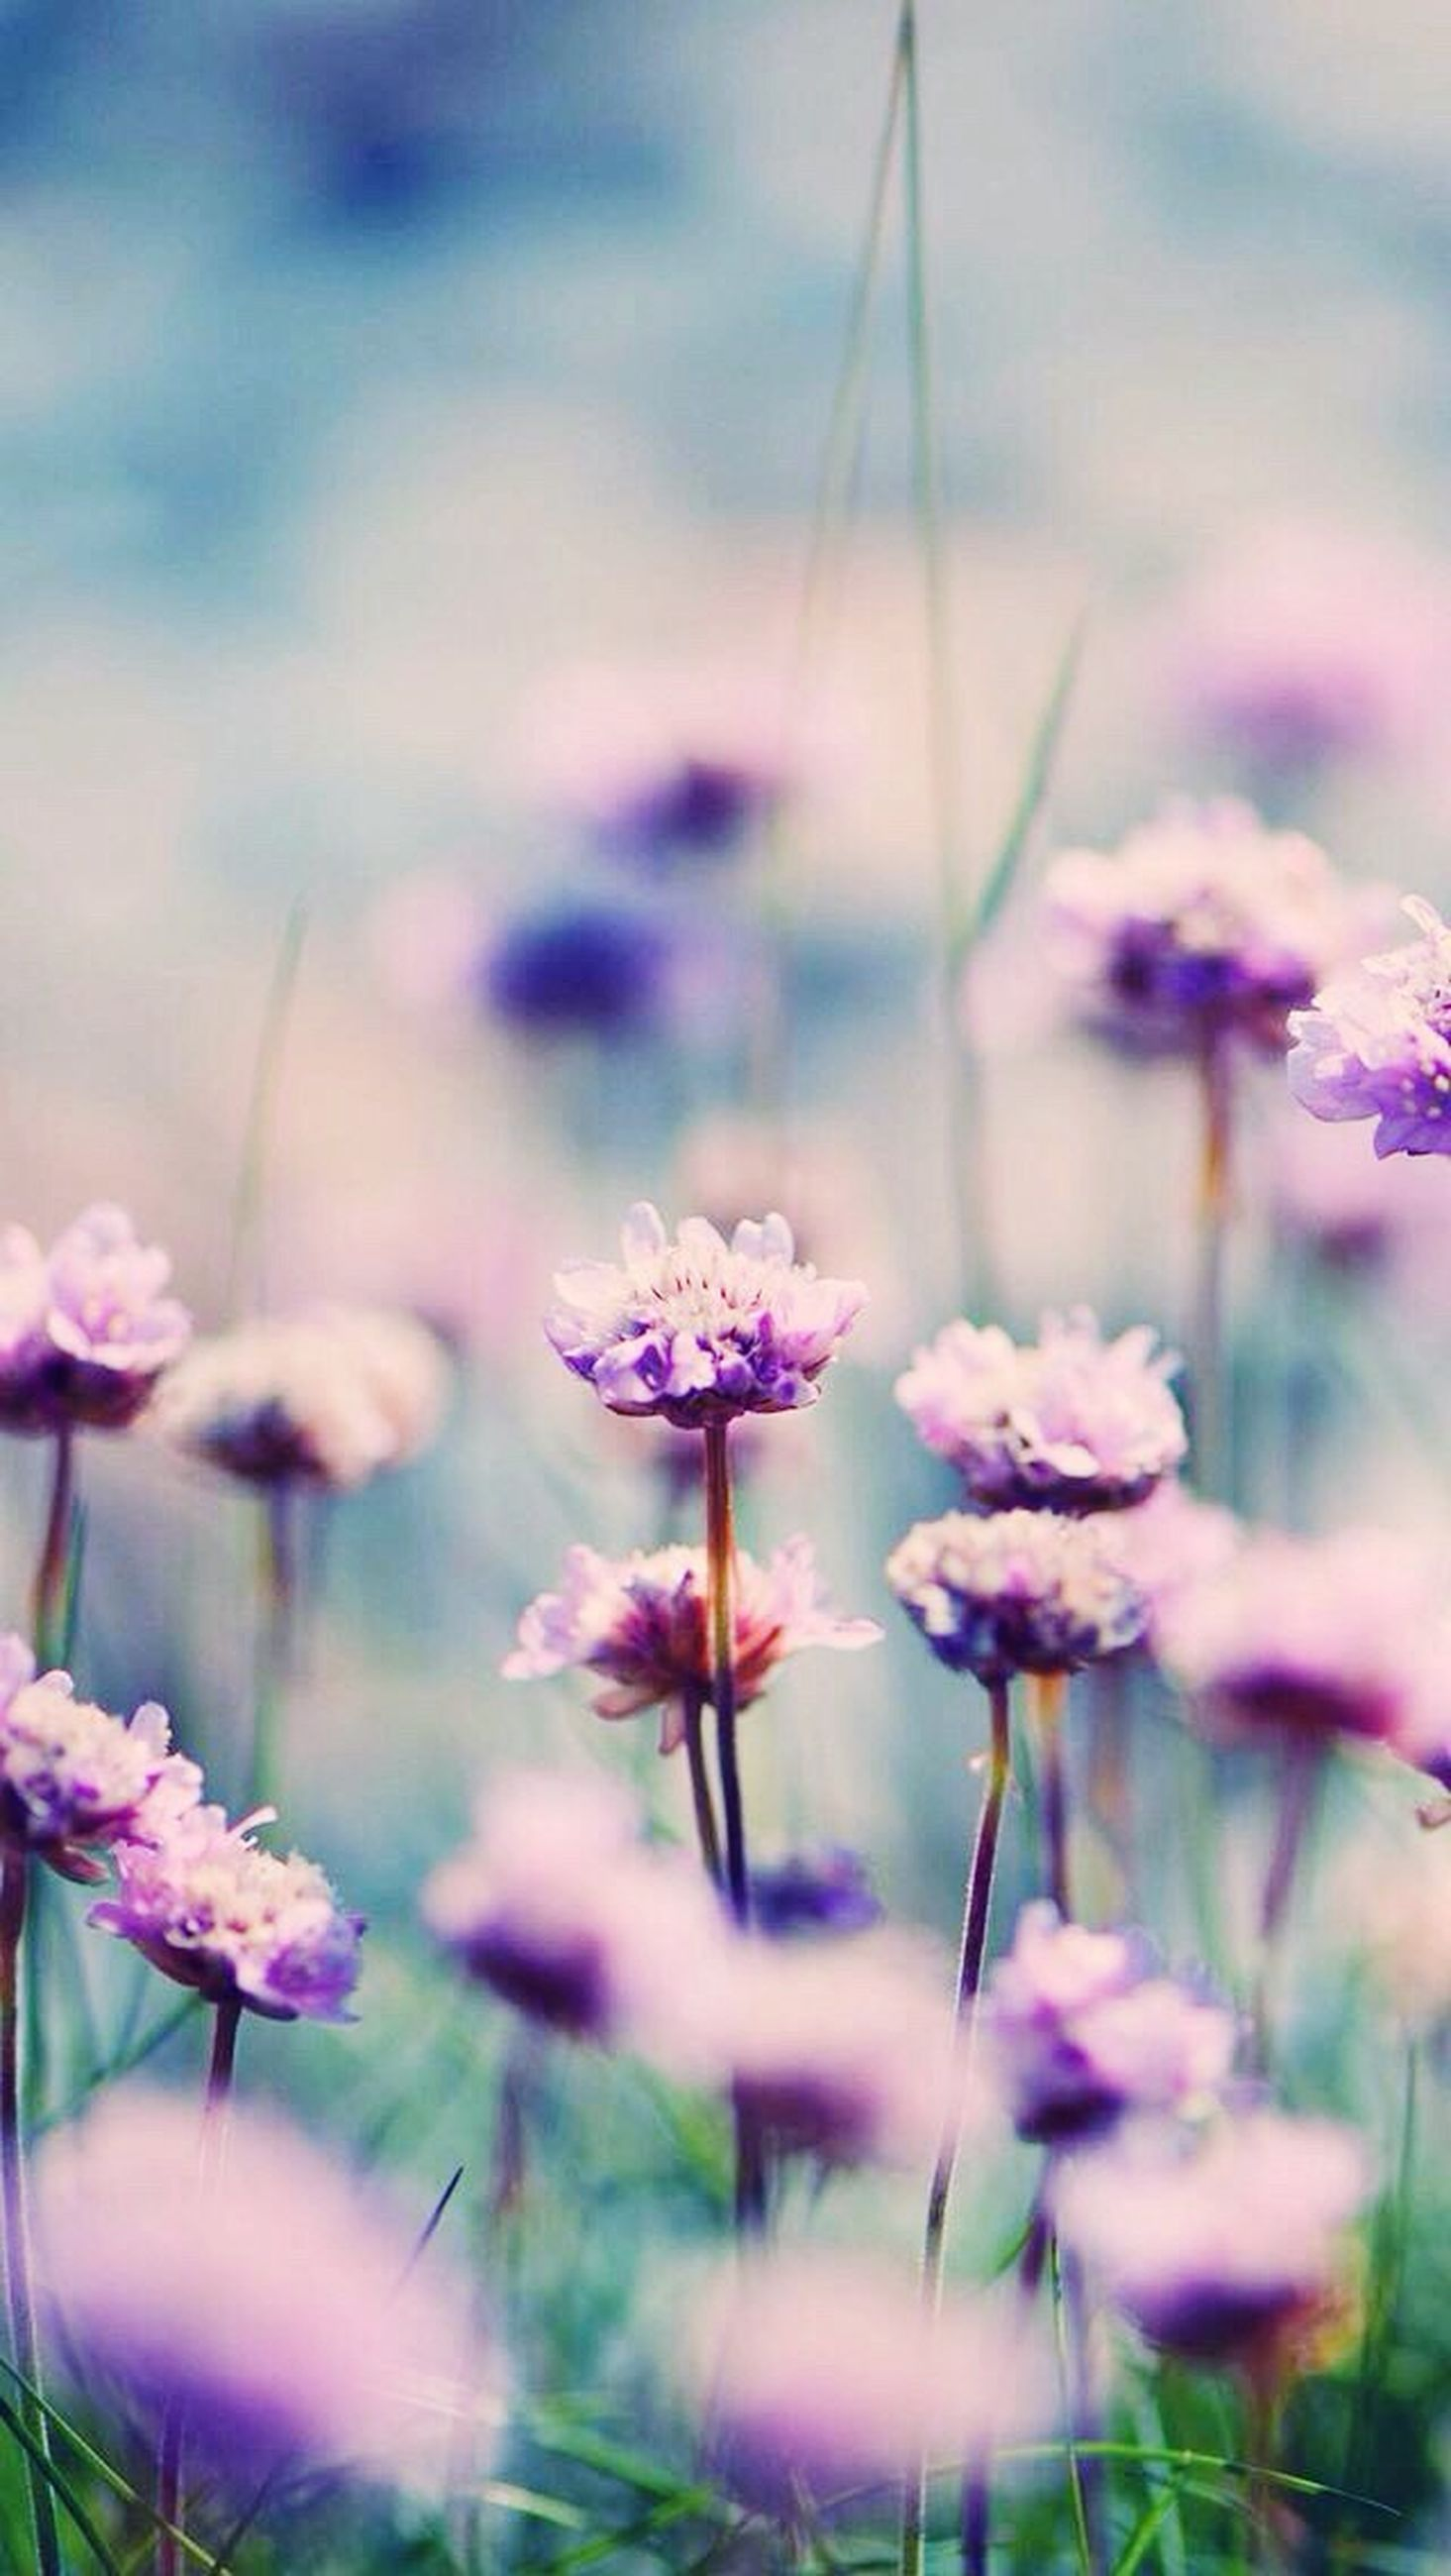 flower, freshness, growth, fragility, focus on foreground, stem, plant, beauty in nature, nature, close-up, field, selective focus, purple, blooming, wildflower, flower head, pink color, petal, blossom, in bloom